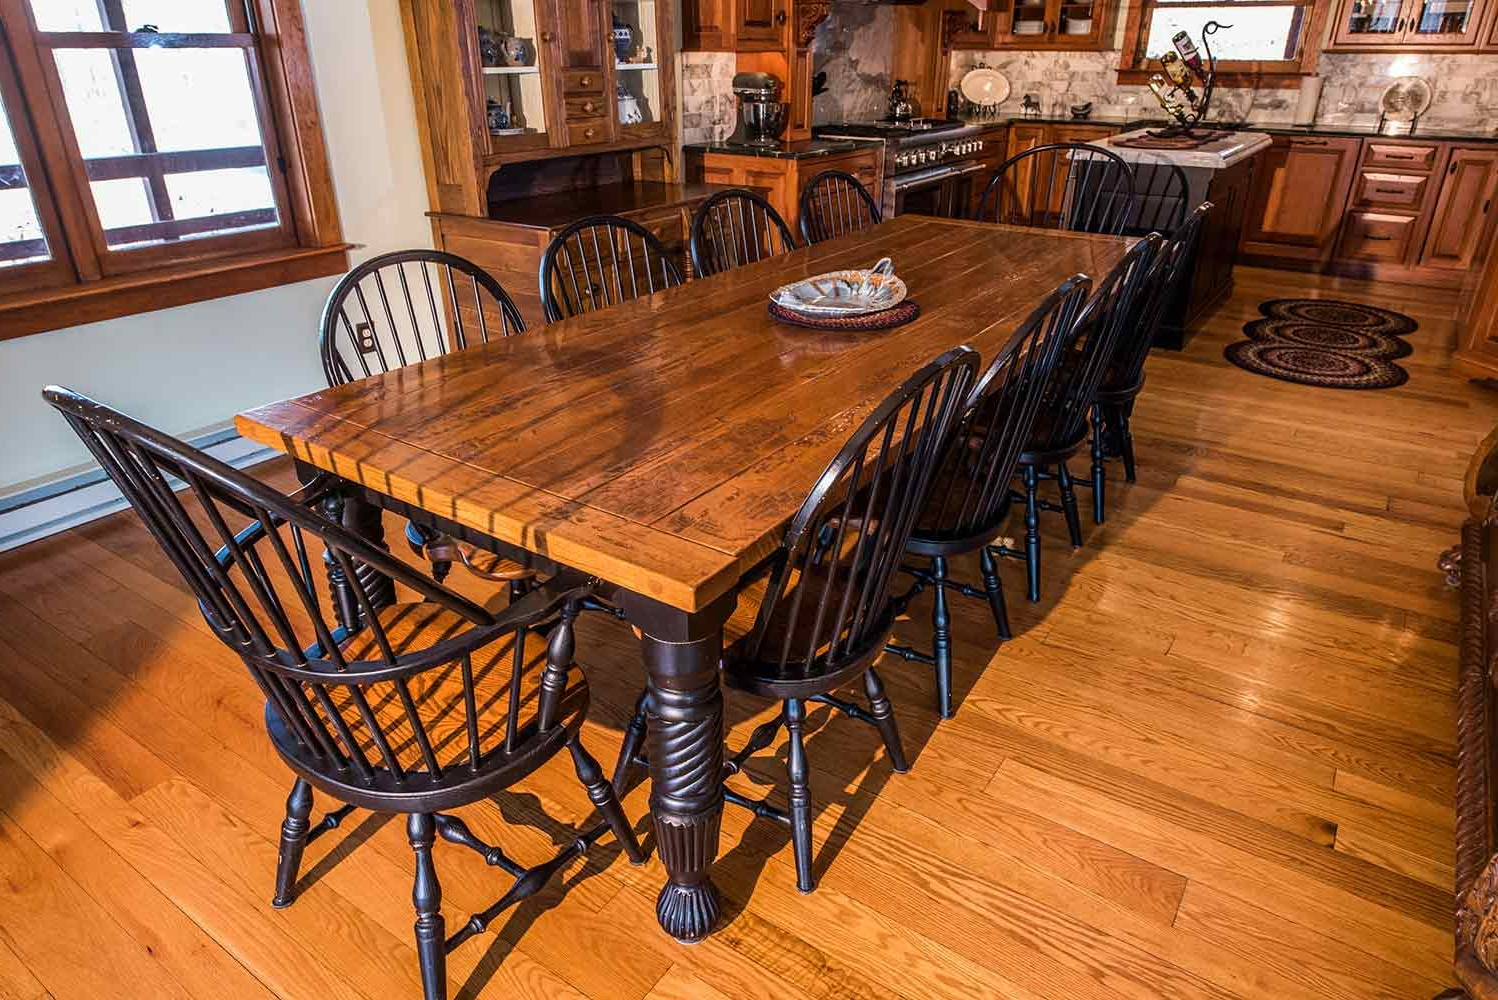 New England Quarter Sawn White Oak Farm Dining Table With 2019 Distressed Walnut And Black Finish Wood Modern Country Dining Tables (View 23 of 25)